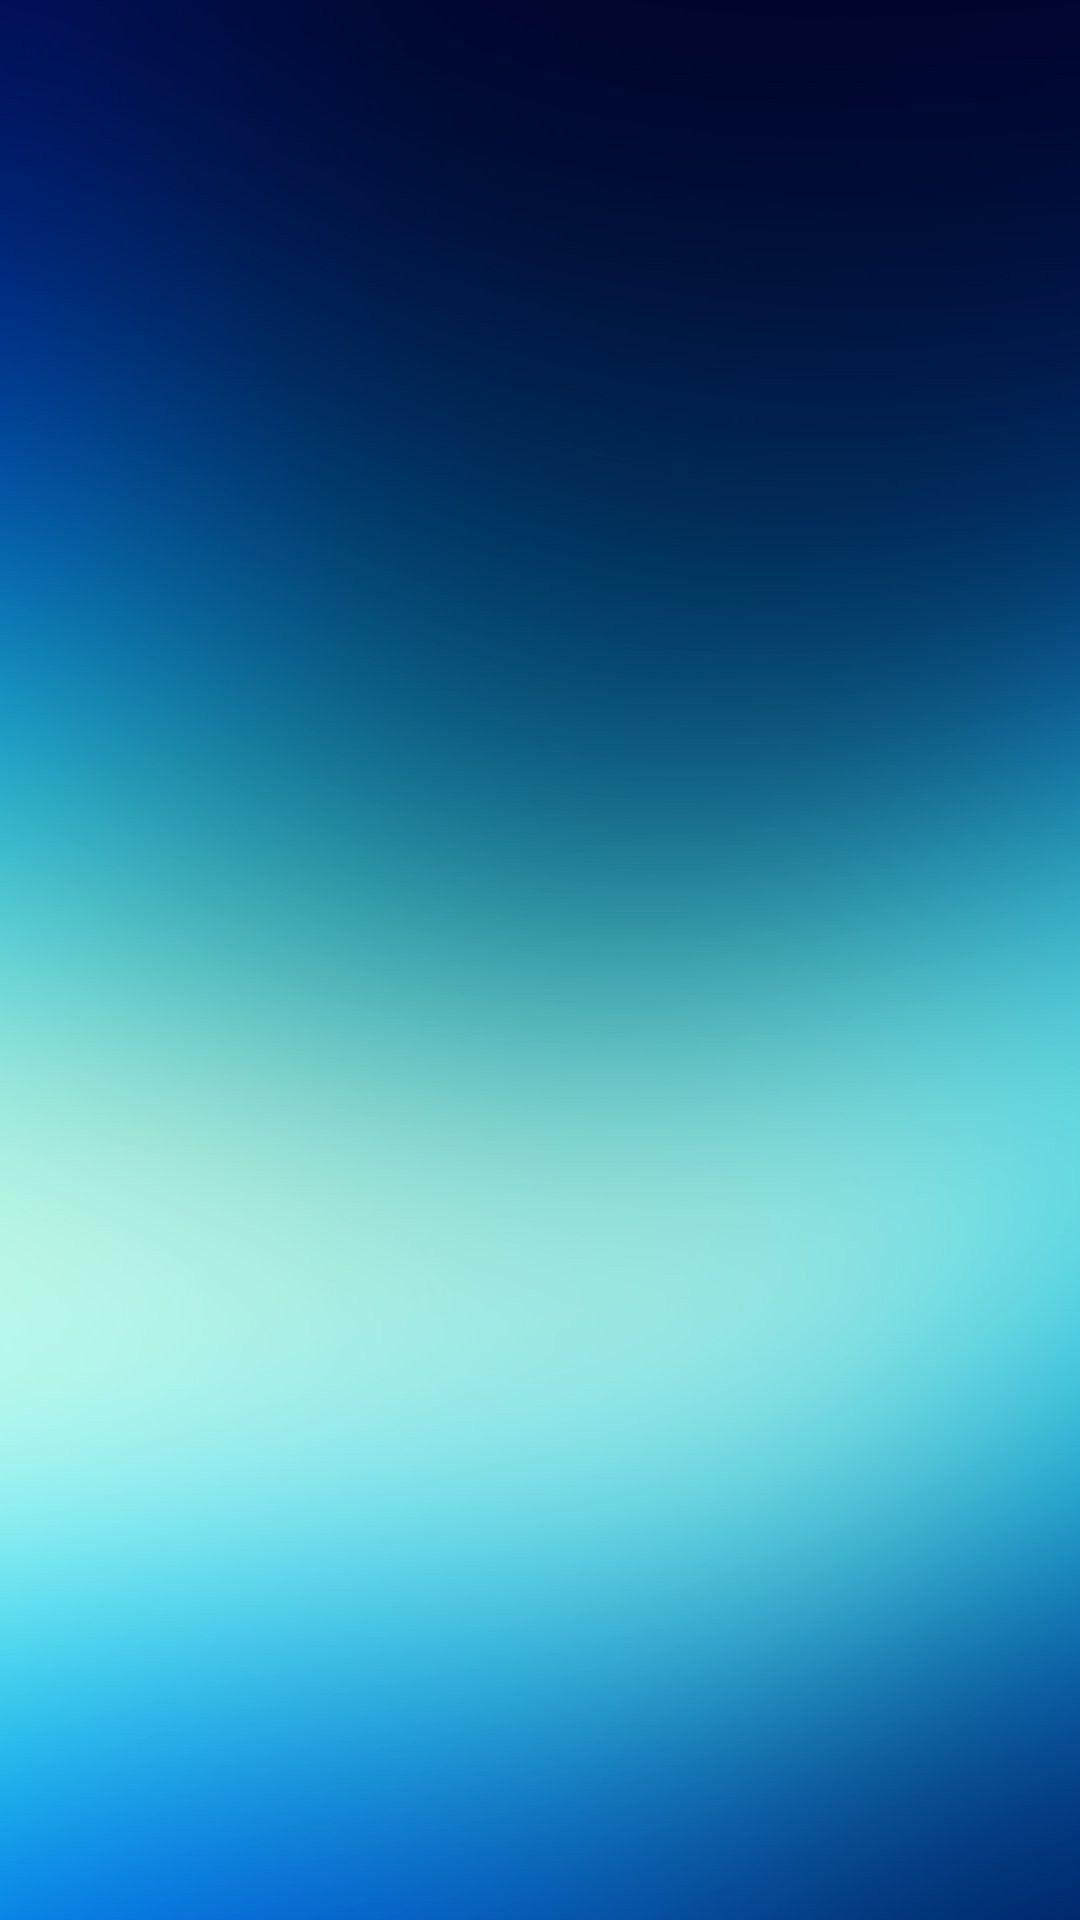 Blue Blur iPhone 6 Plus Wallpapers 26343